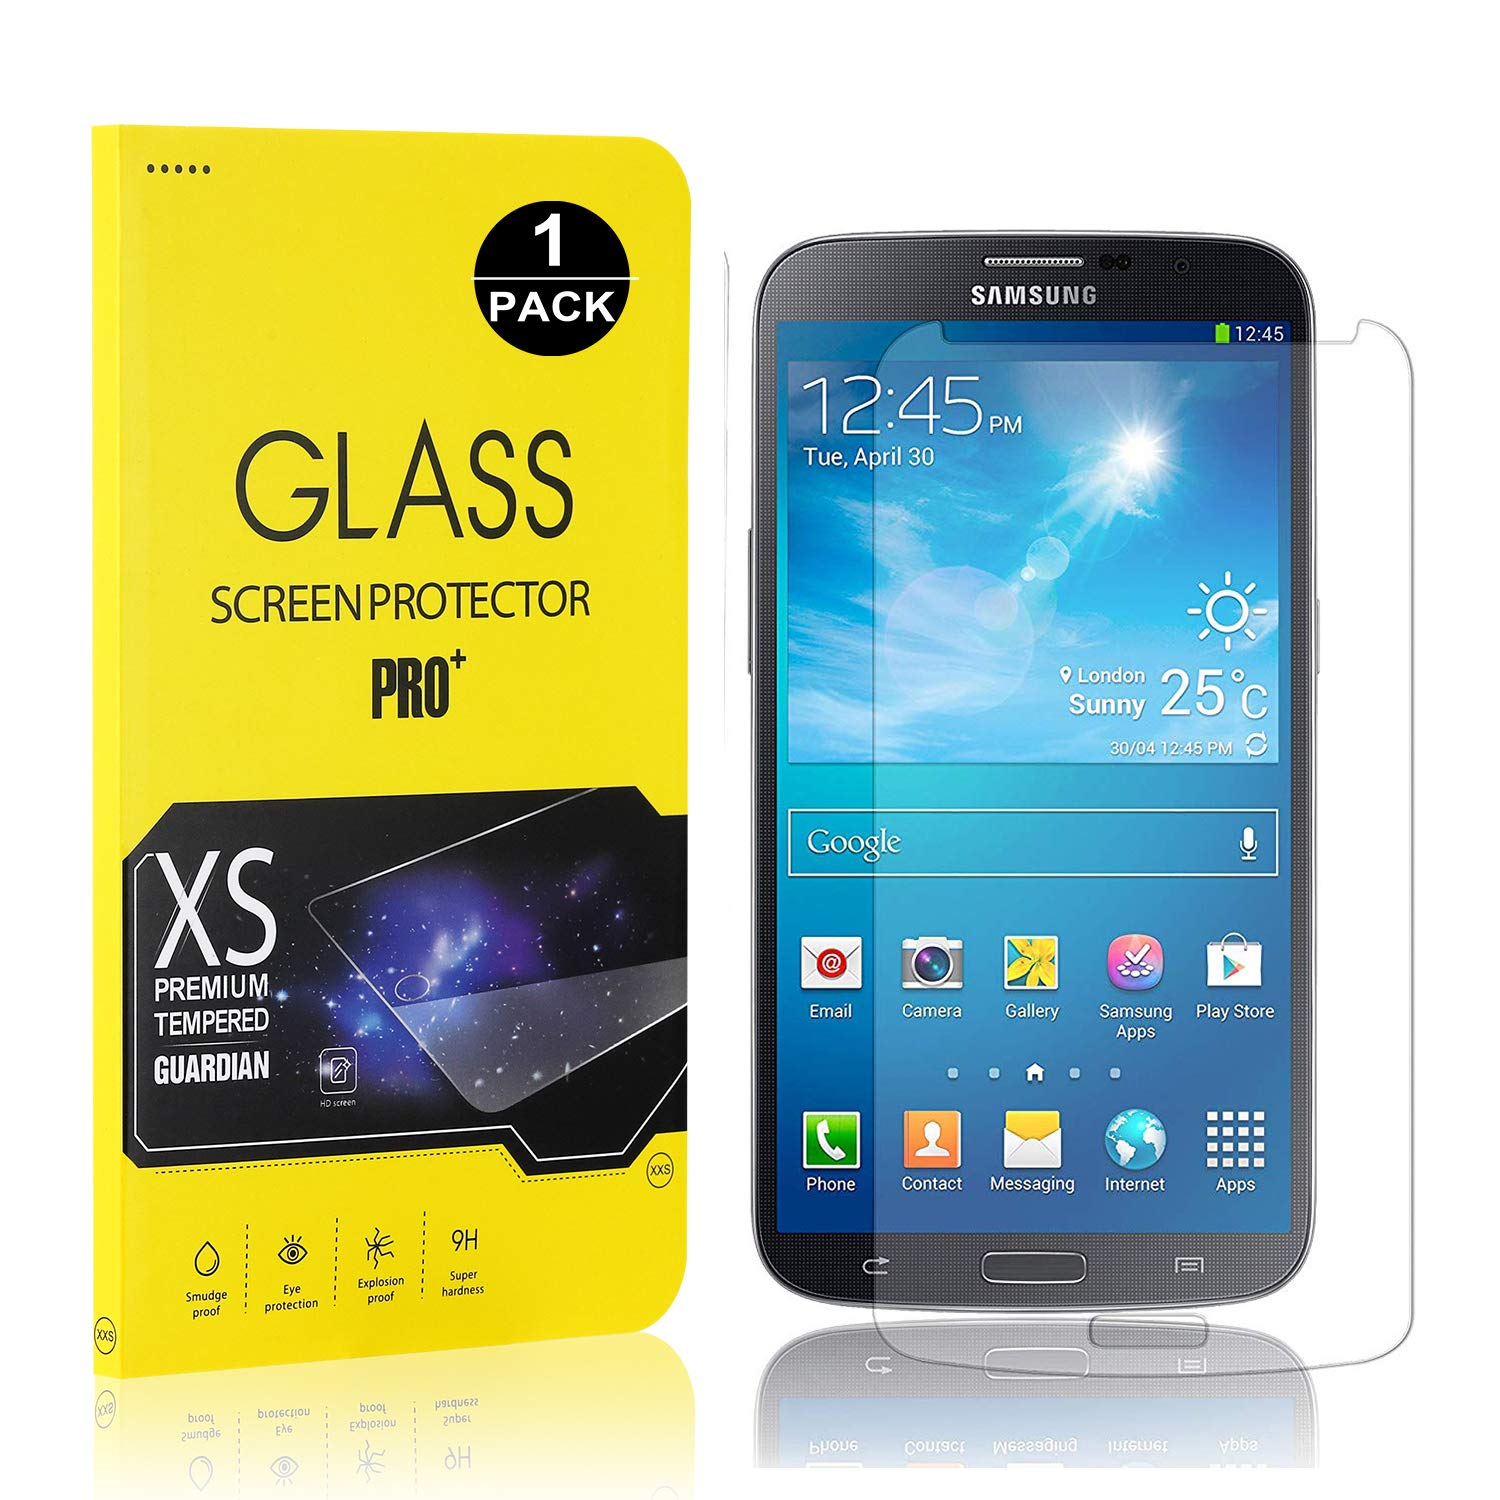 Galaxy S4 Screen Protector Film, UNEXTATI® Tempered Glass Screen Protector, HD Clear Screen Protector for Samsung Galaxy S4 (1 PACK)